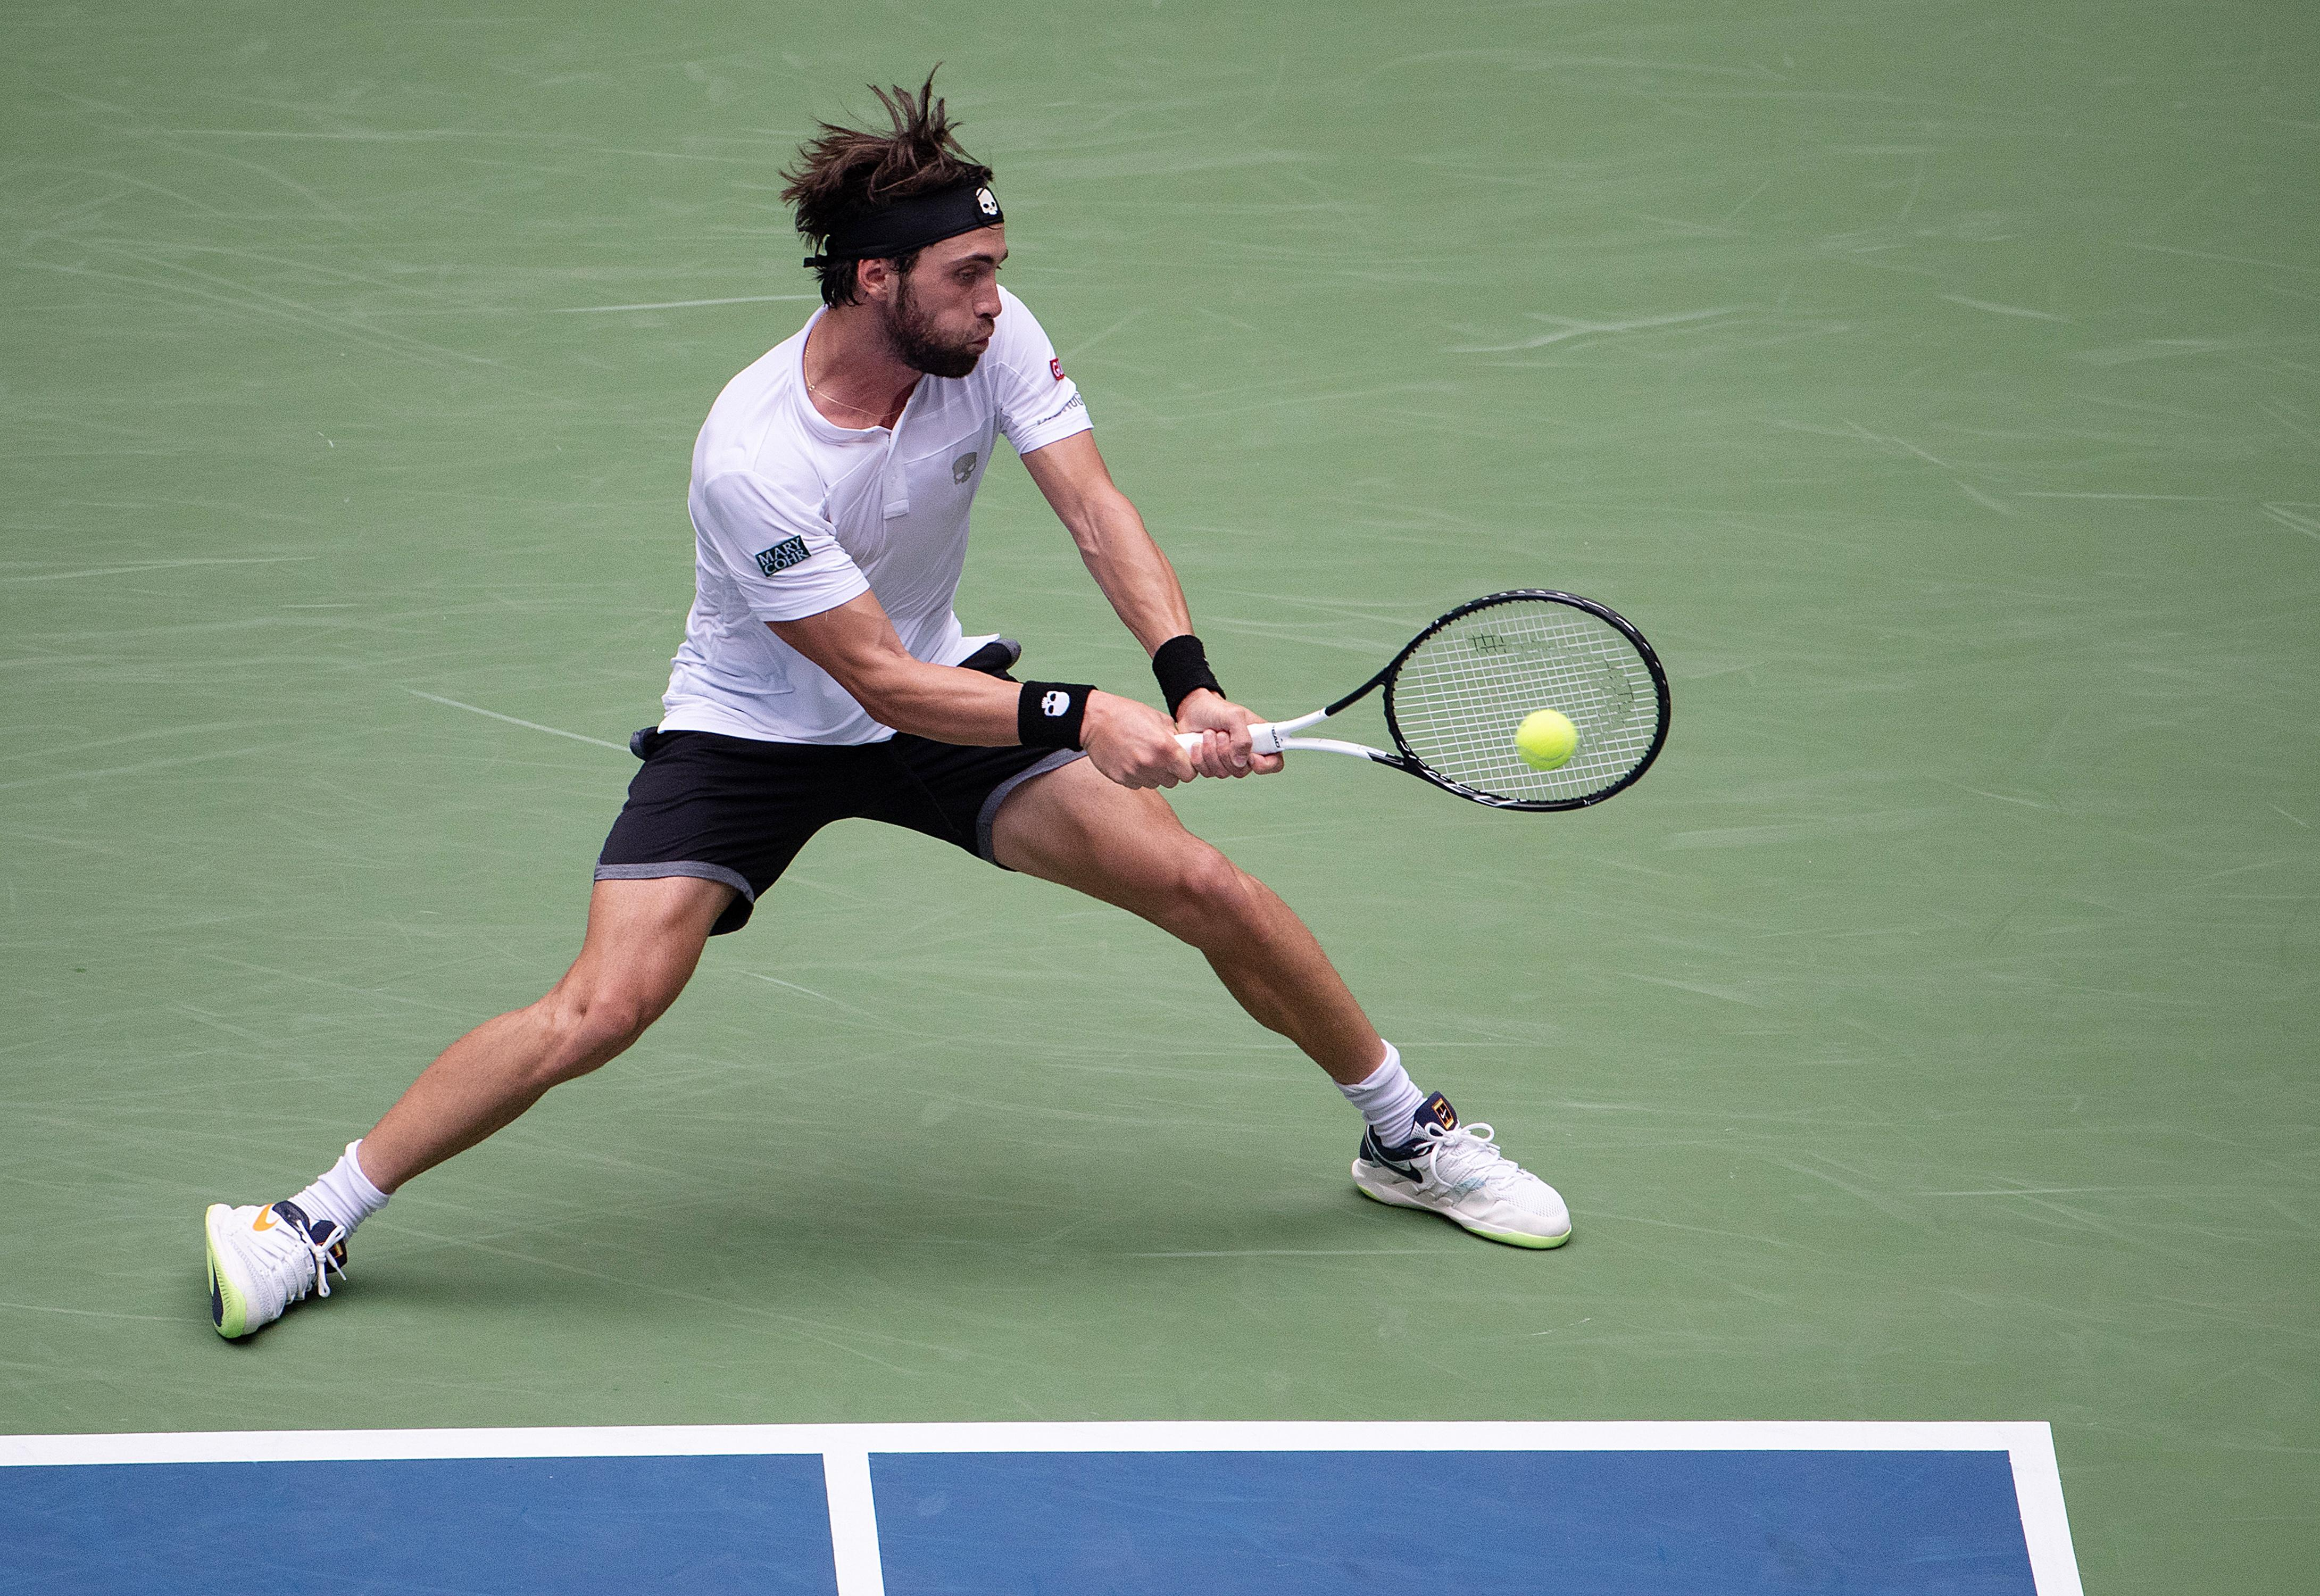 The 26-year-old played a fantastic third set to pull himself back into the match